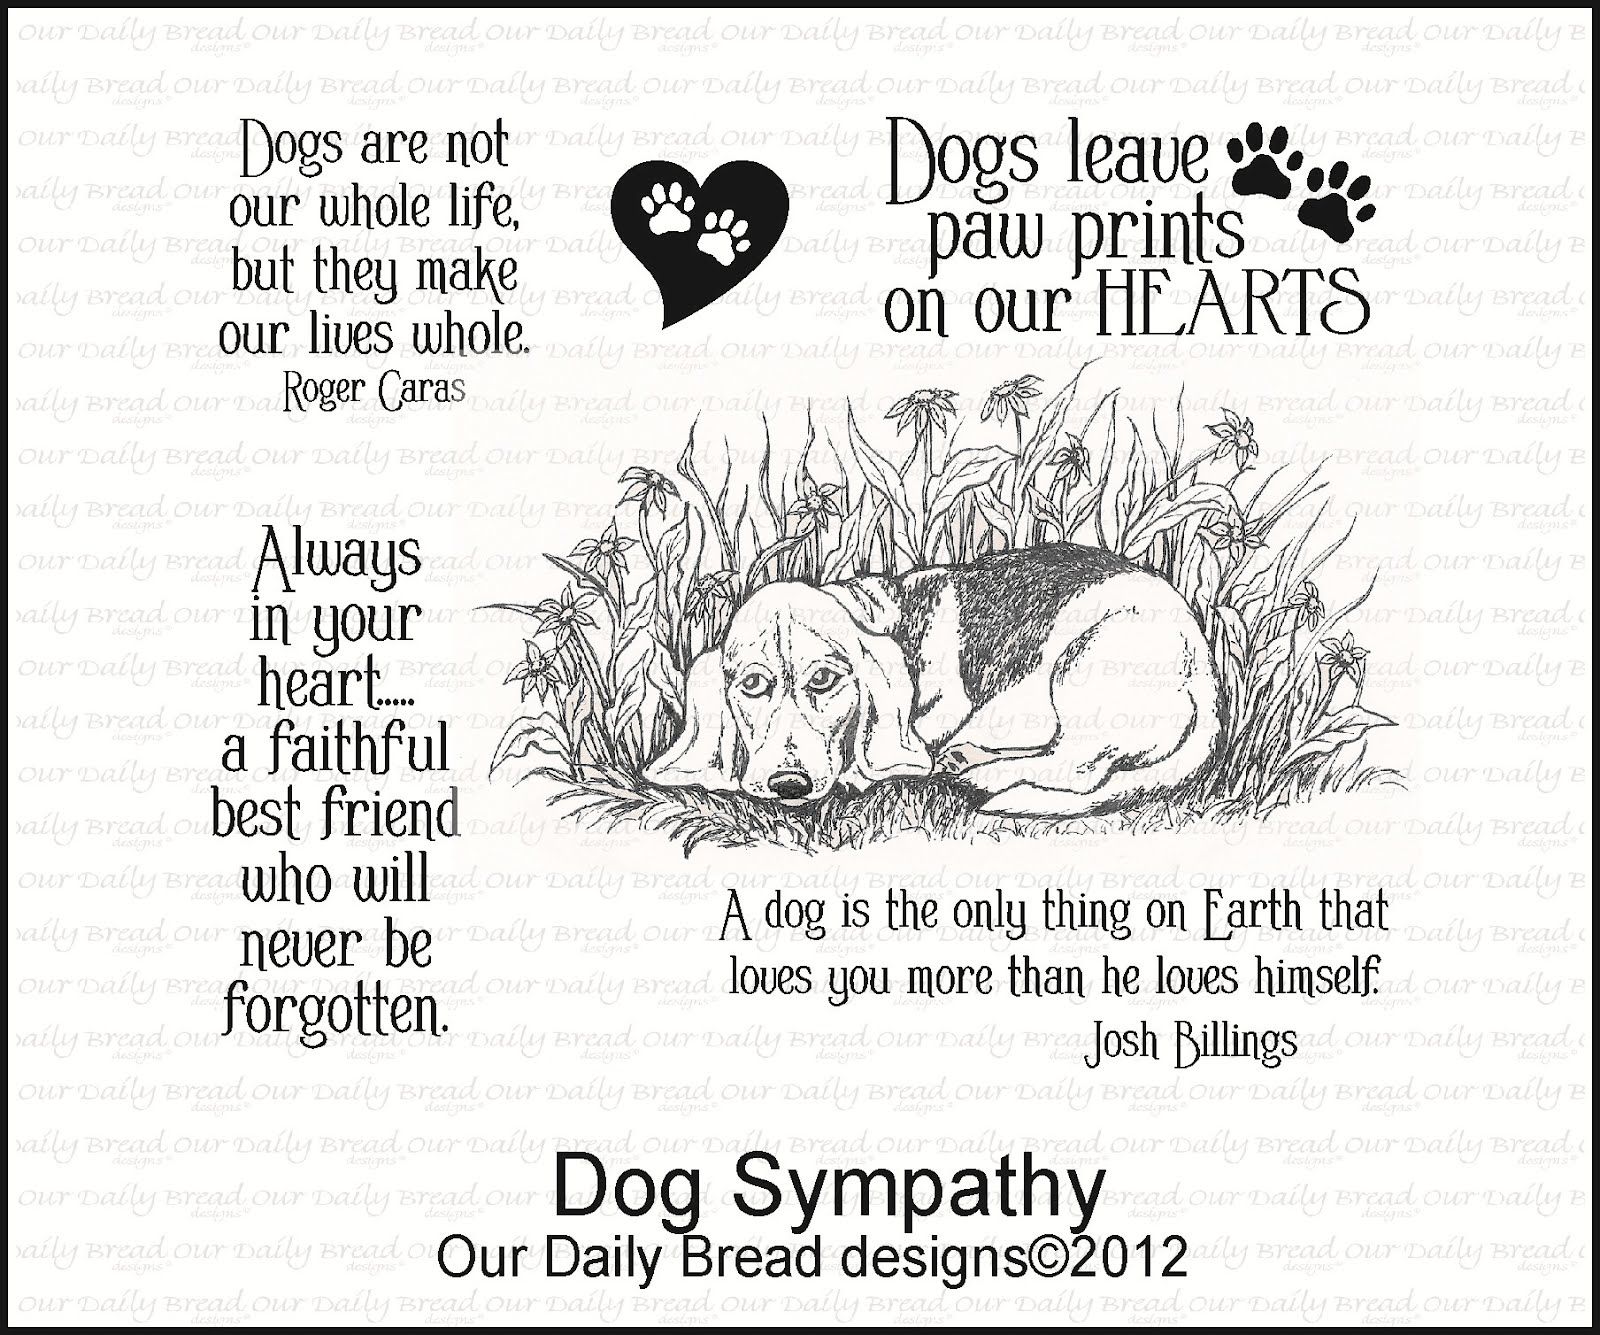 Loss Of Pet Quotes For Dogs: Our Daily Bread Designs Blog: Here Are The April New